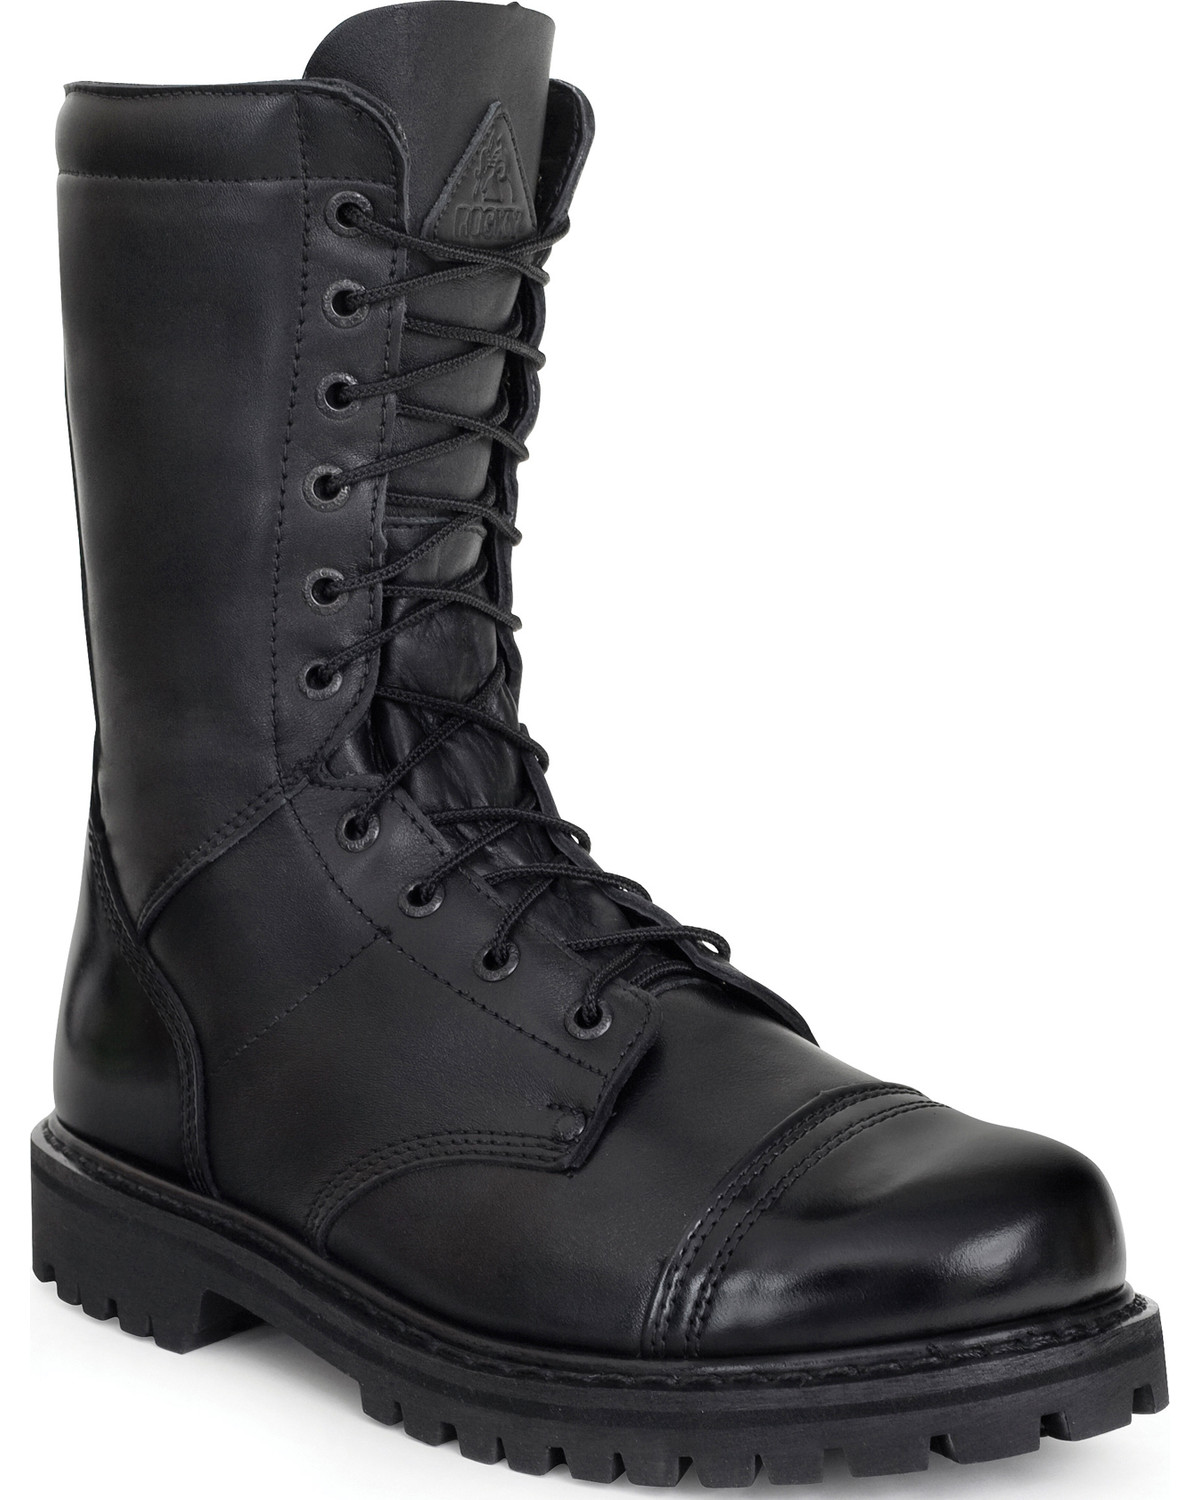 Rocky Women's Military Jump Boots